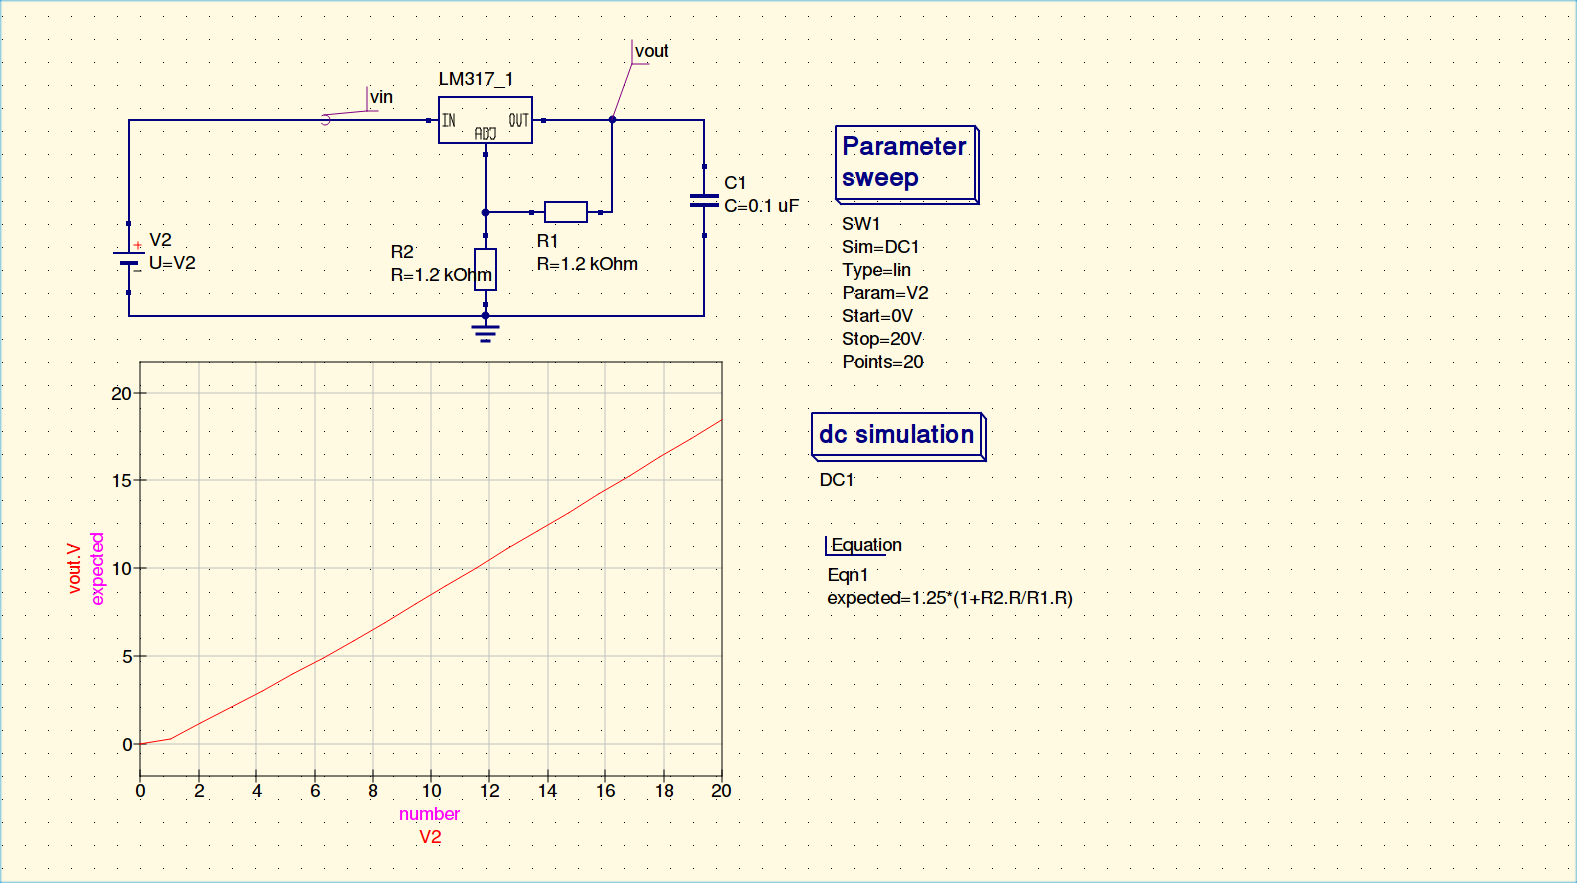 LM317 models not working as expected · Issue #367 · Qucs